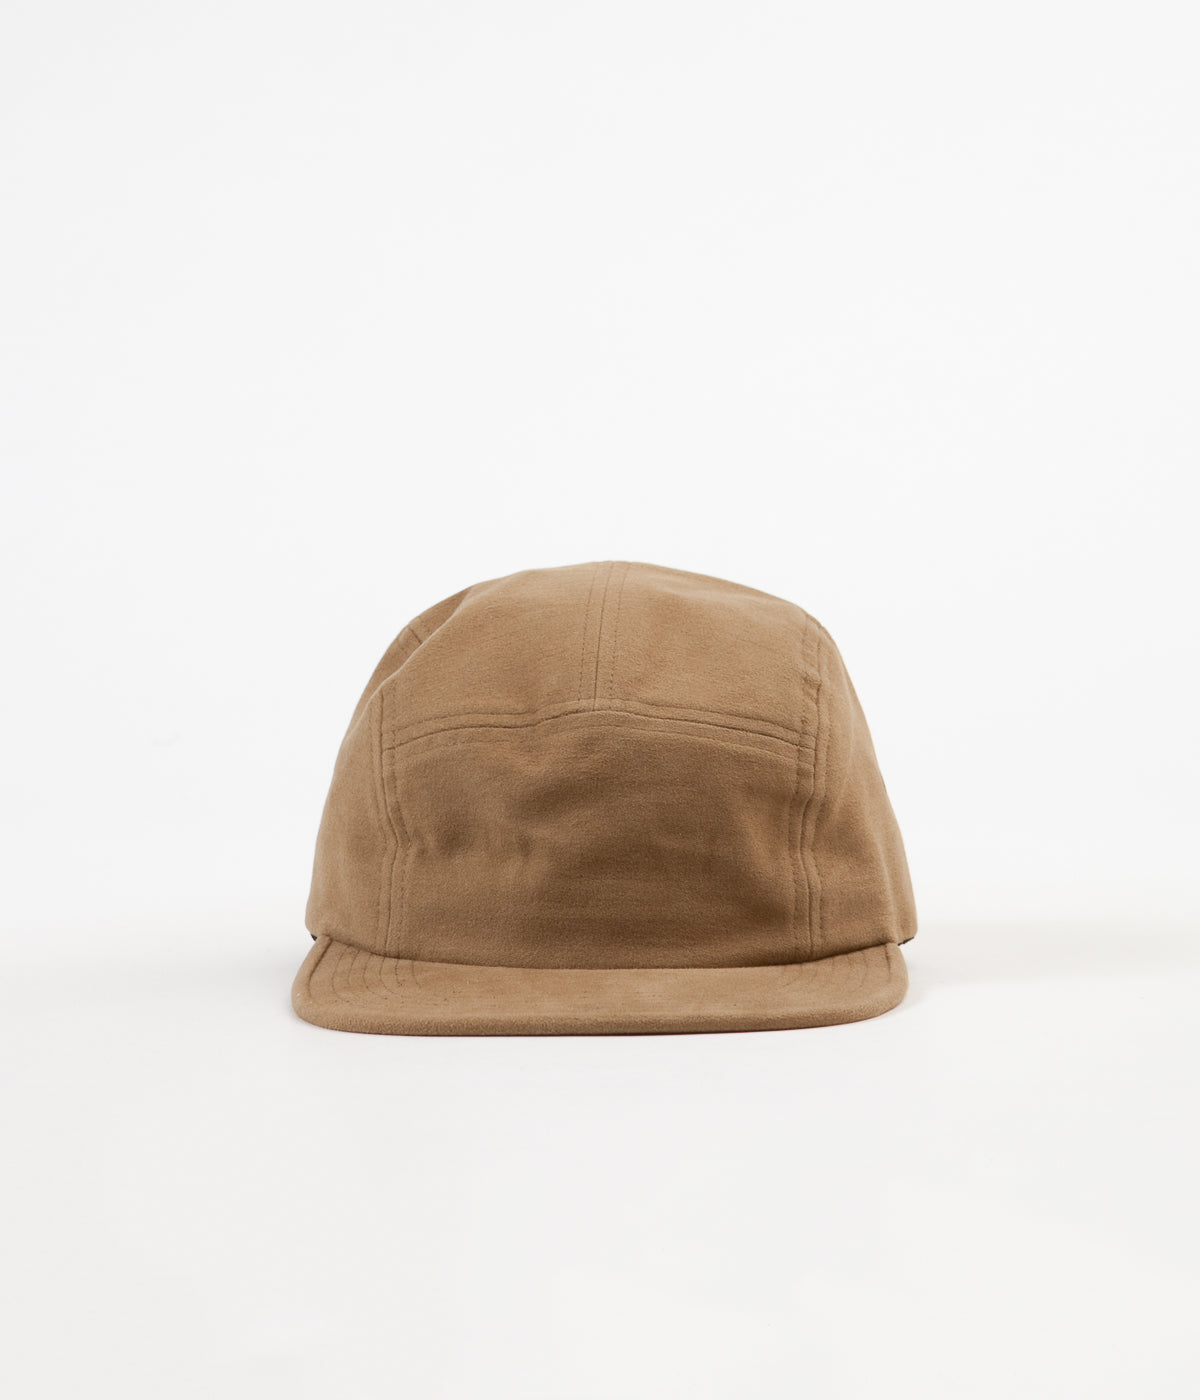 27289f51094 ... Norse Projects Moleskin 5 Panel Cap - Camel ...